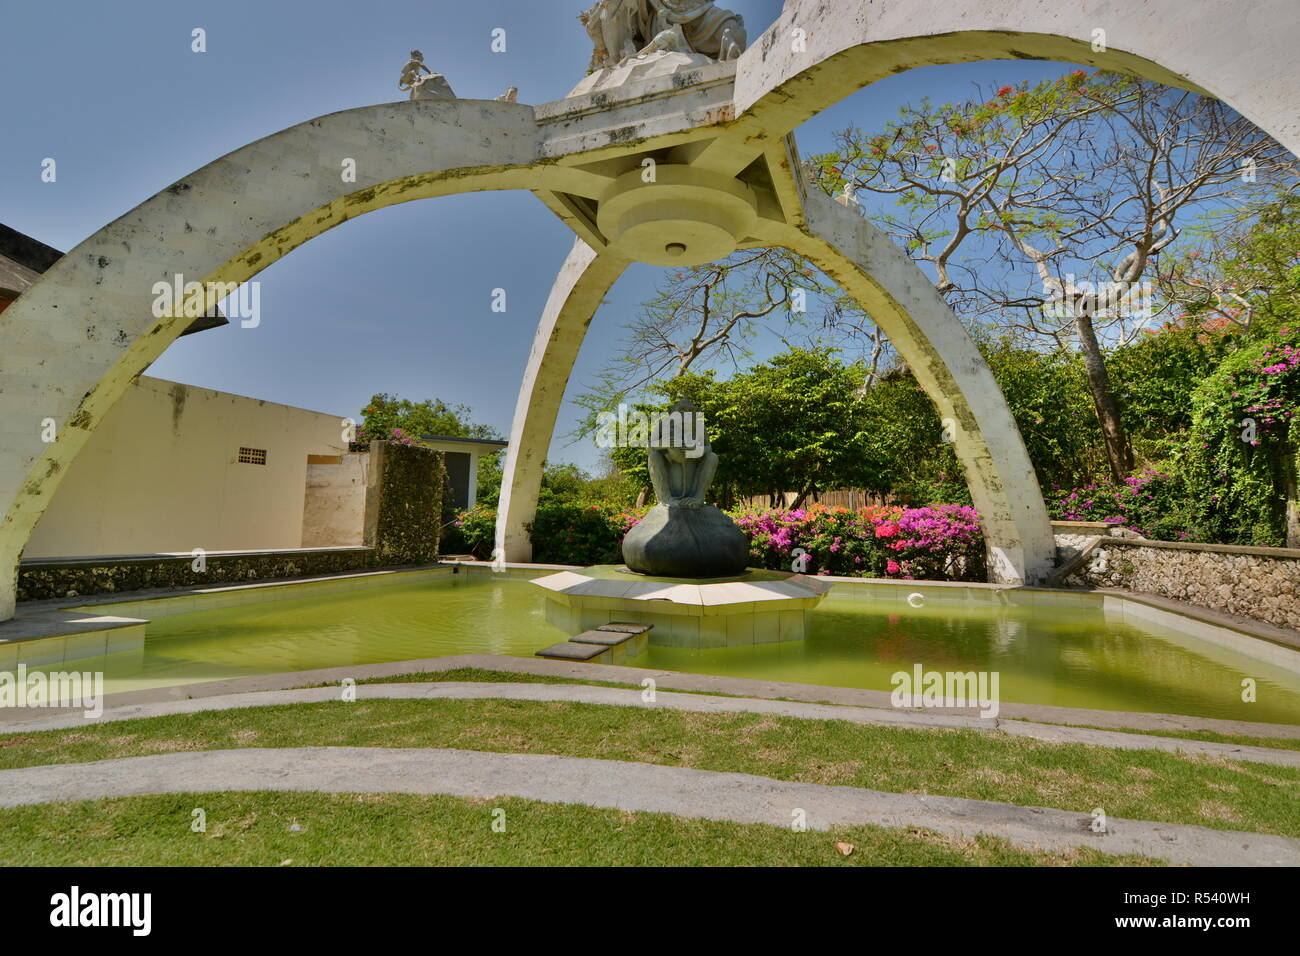 Kumbhakarna Laga statue and fountain. Pura Luhur Uluwatu. Bali. Indonesia Stock Photo